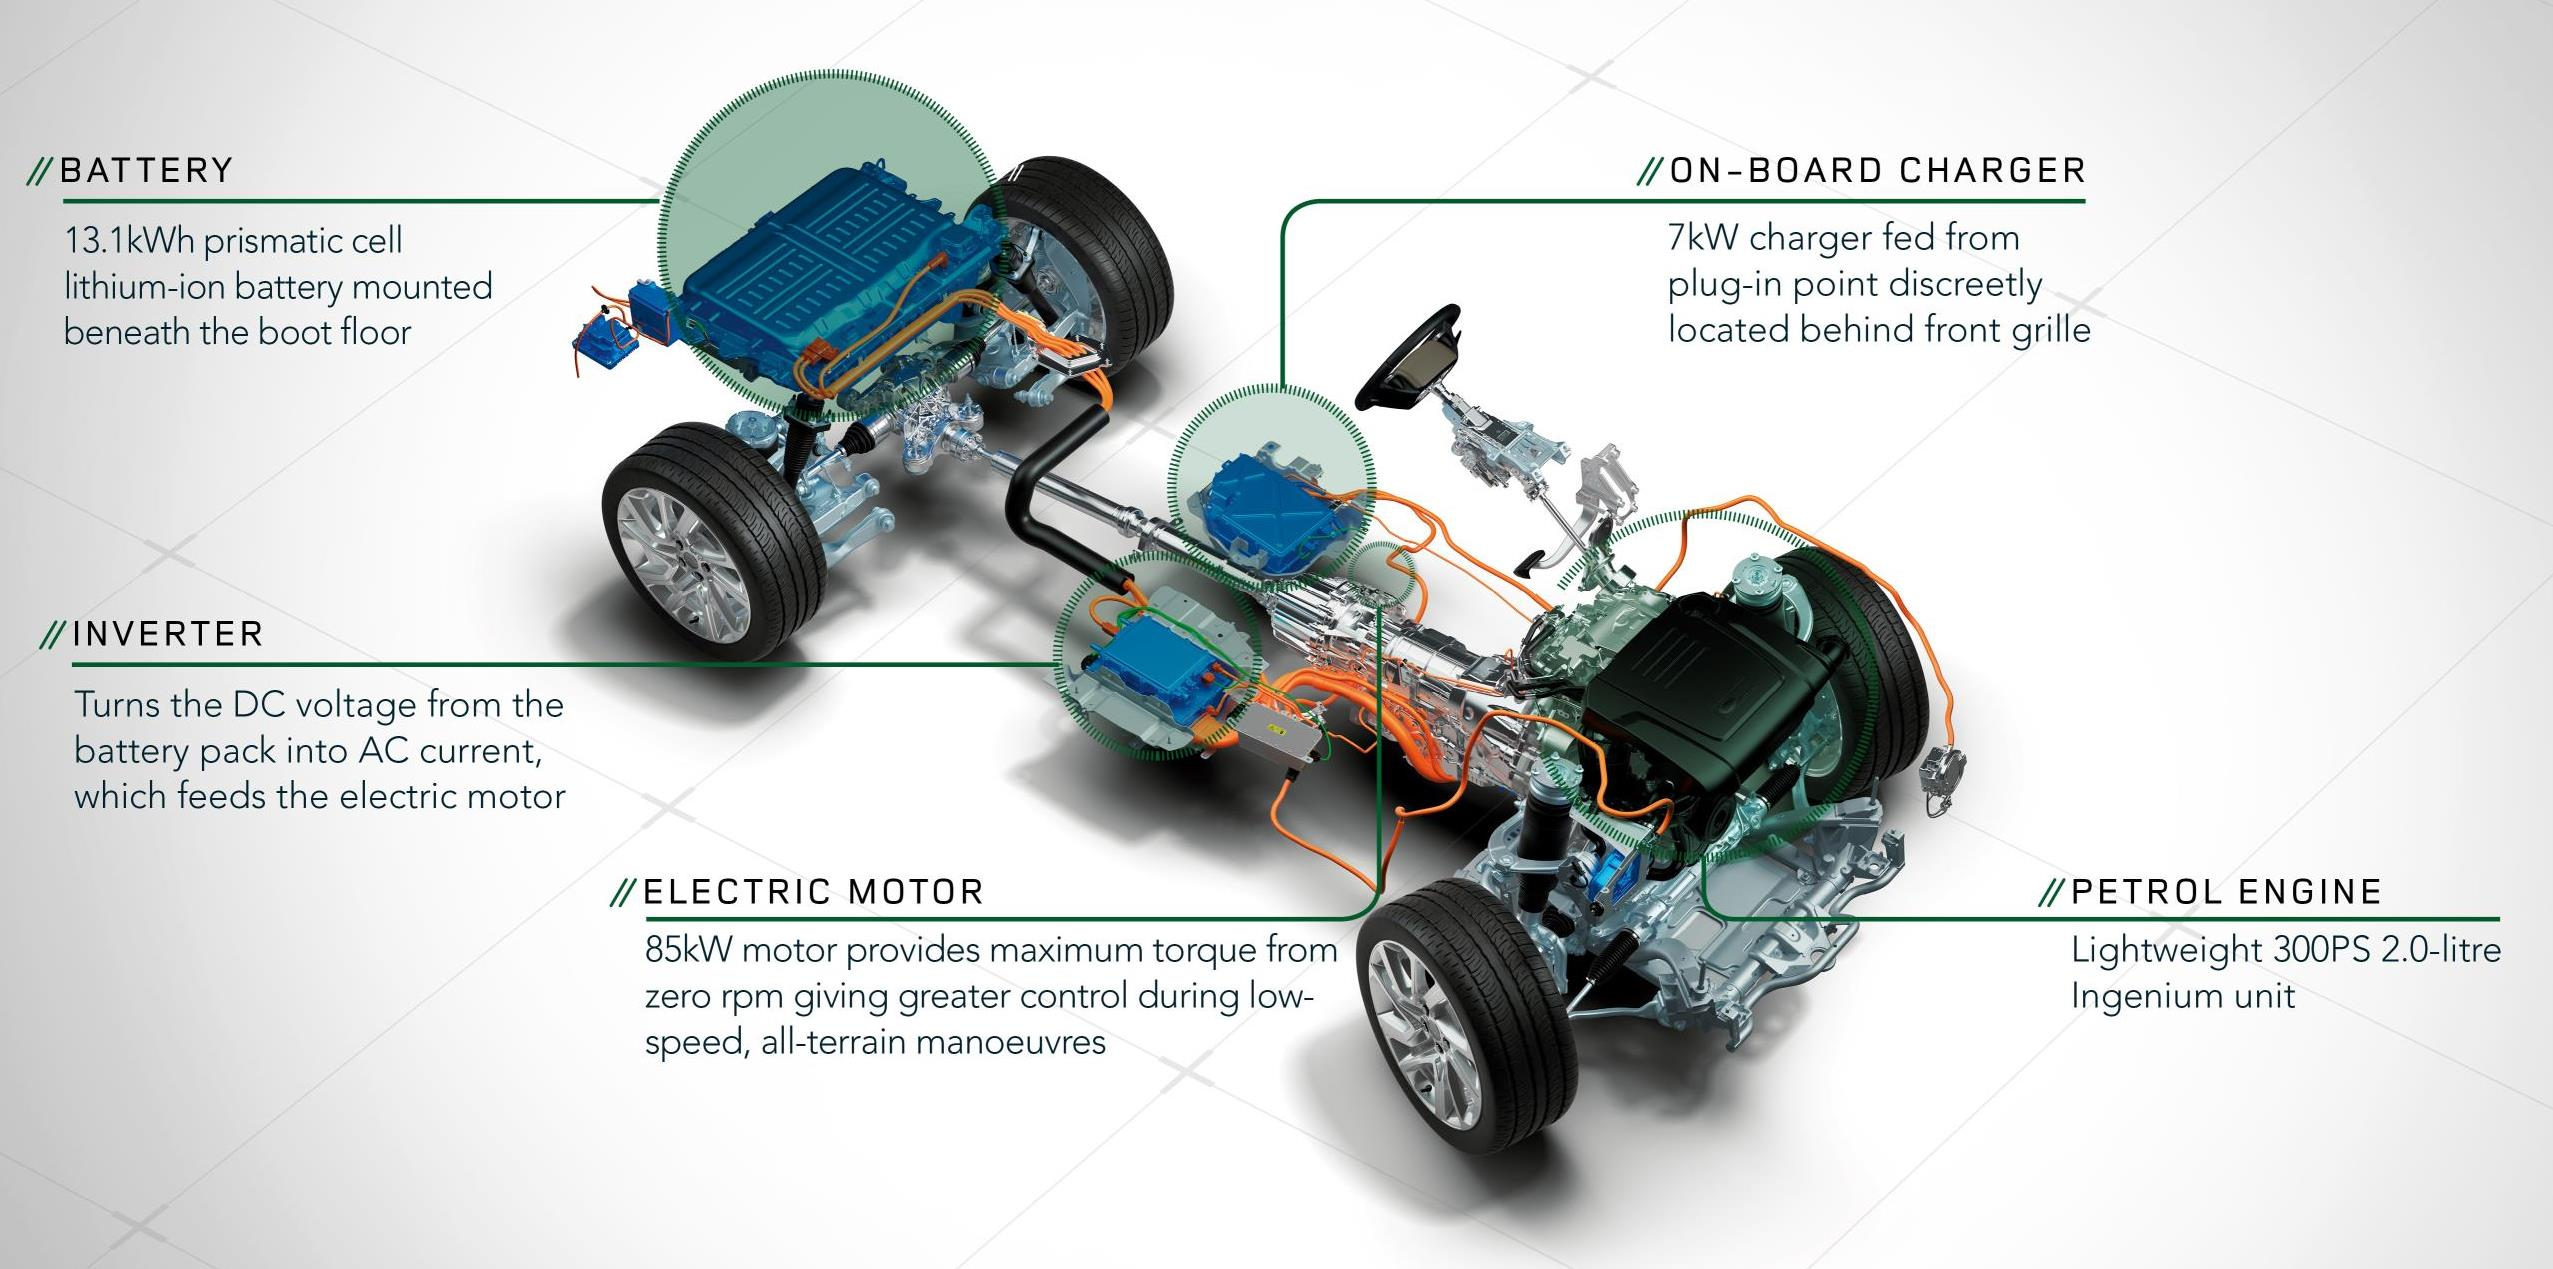 Land Rover Reveals The Range Sport Concept Vehicle Leasing 2001 Engine Diagram Connected To A Rapid Charger Full Charge Can Be Achieved In 2 Hours 45 Minutes At Home Using Dedicated Or 32 Amp Wall Box